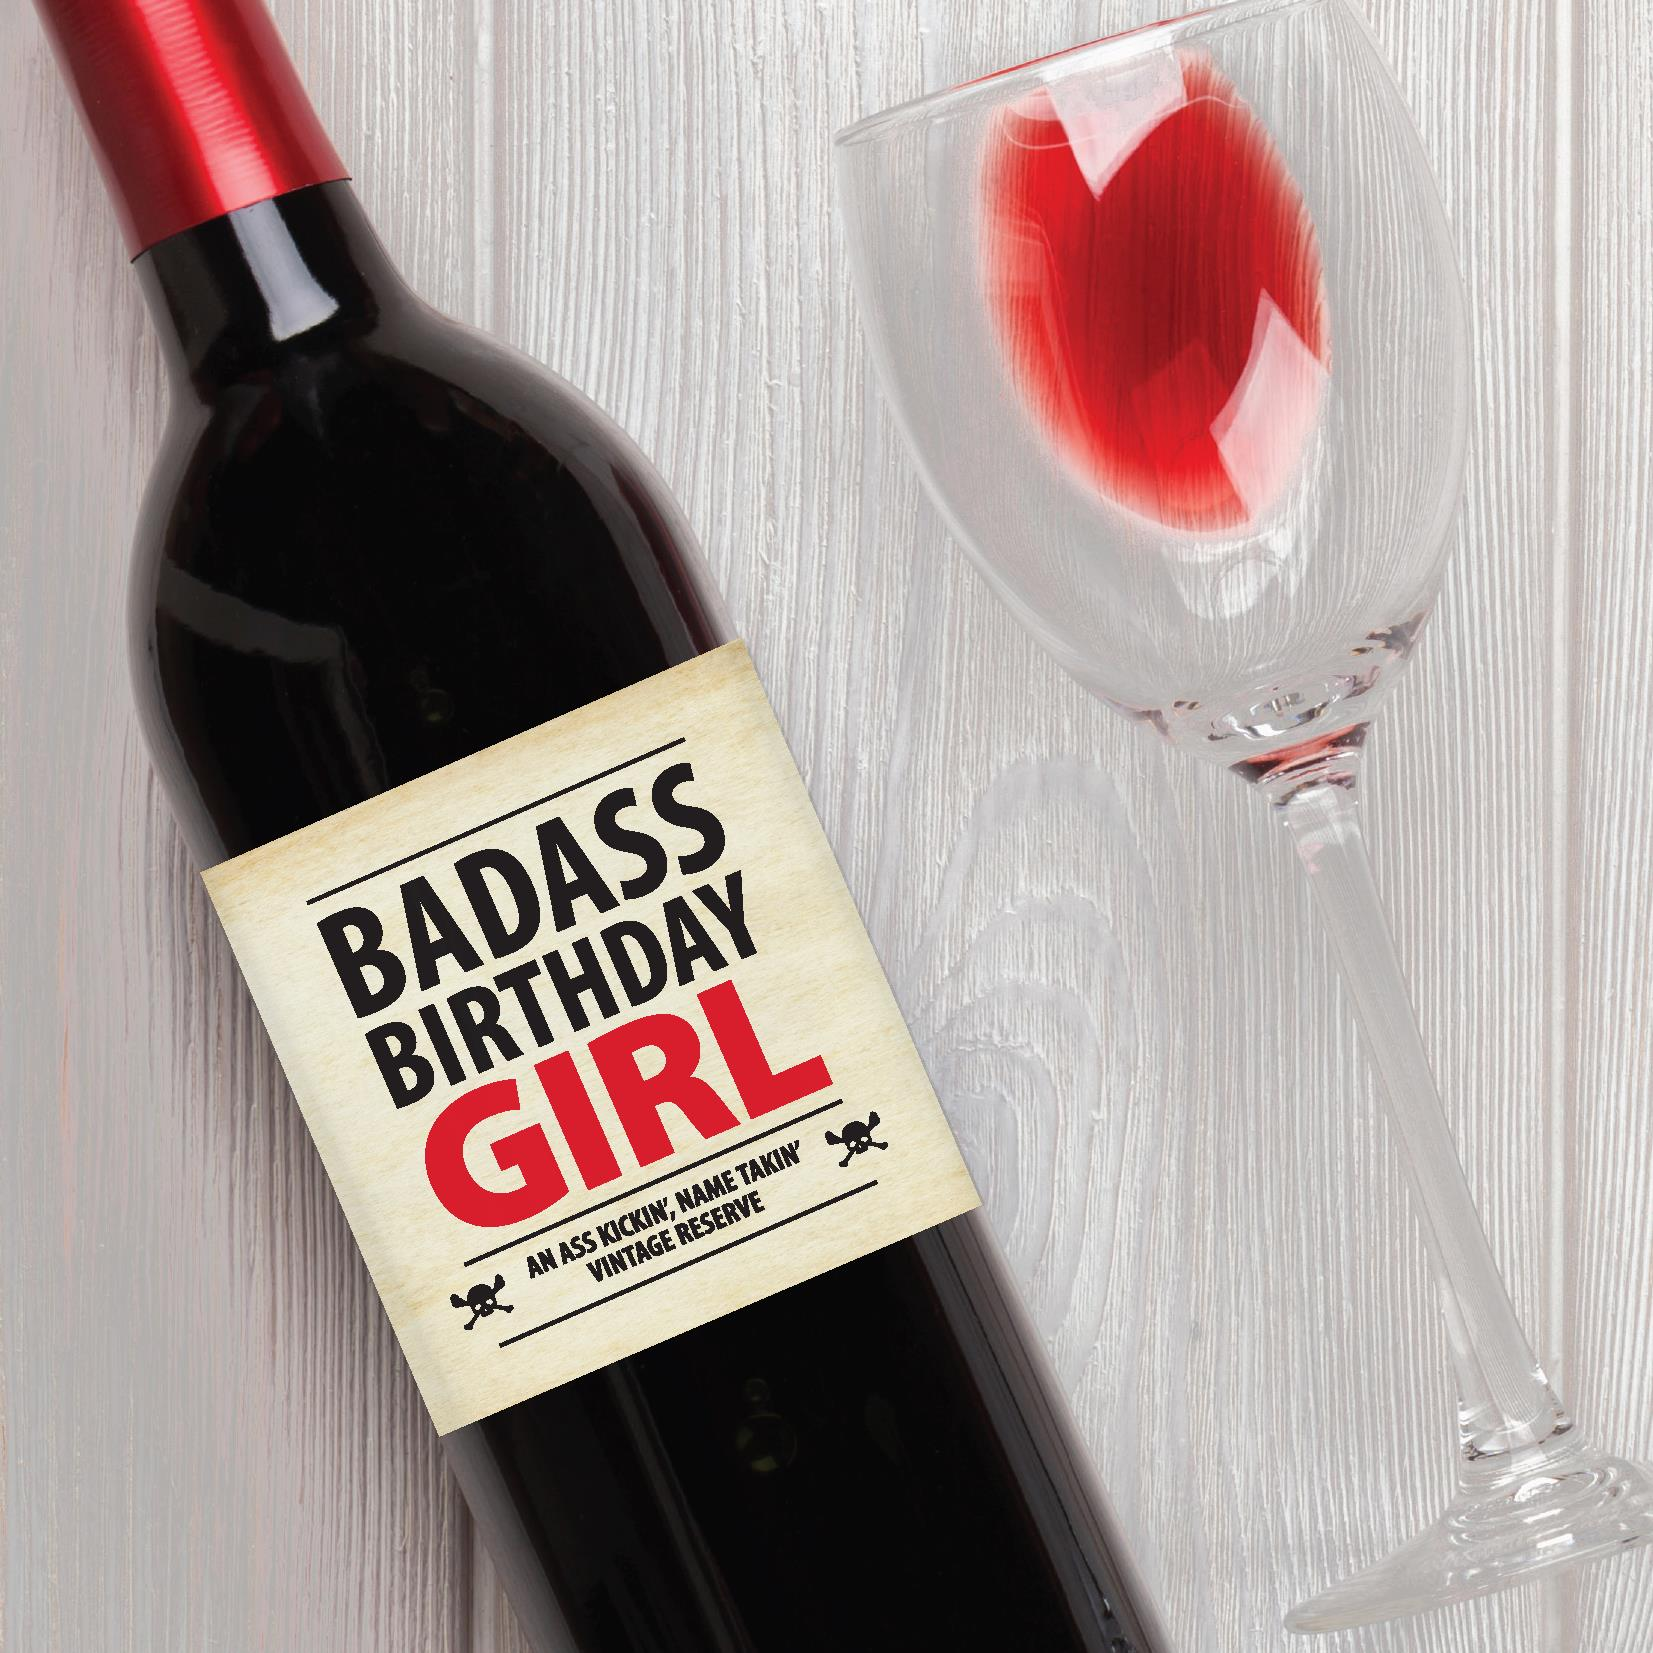 birthday girl wine label ; Birthday_Bad-Ass-Bday-Girl_Wine-Label_Staged-Image_Tan